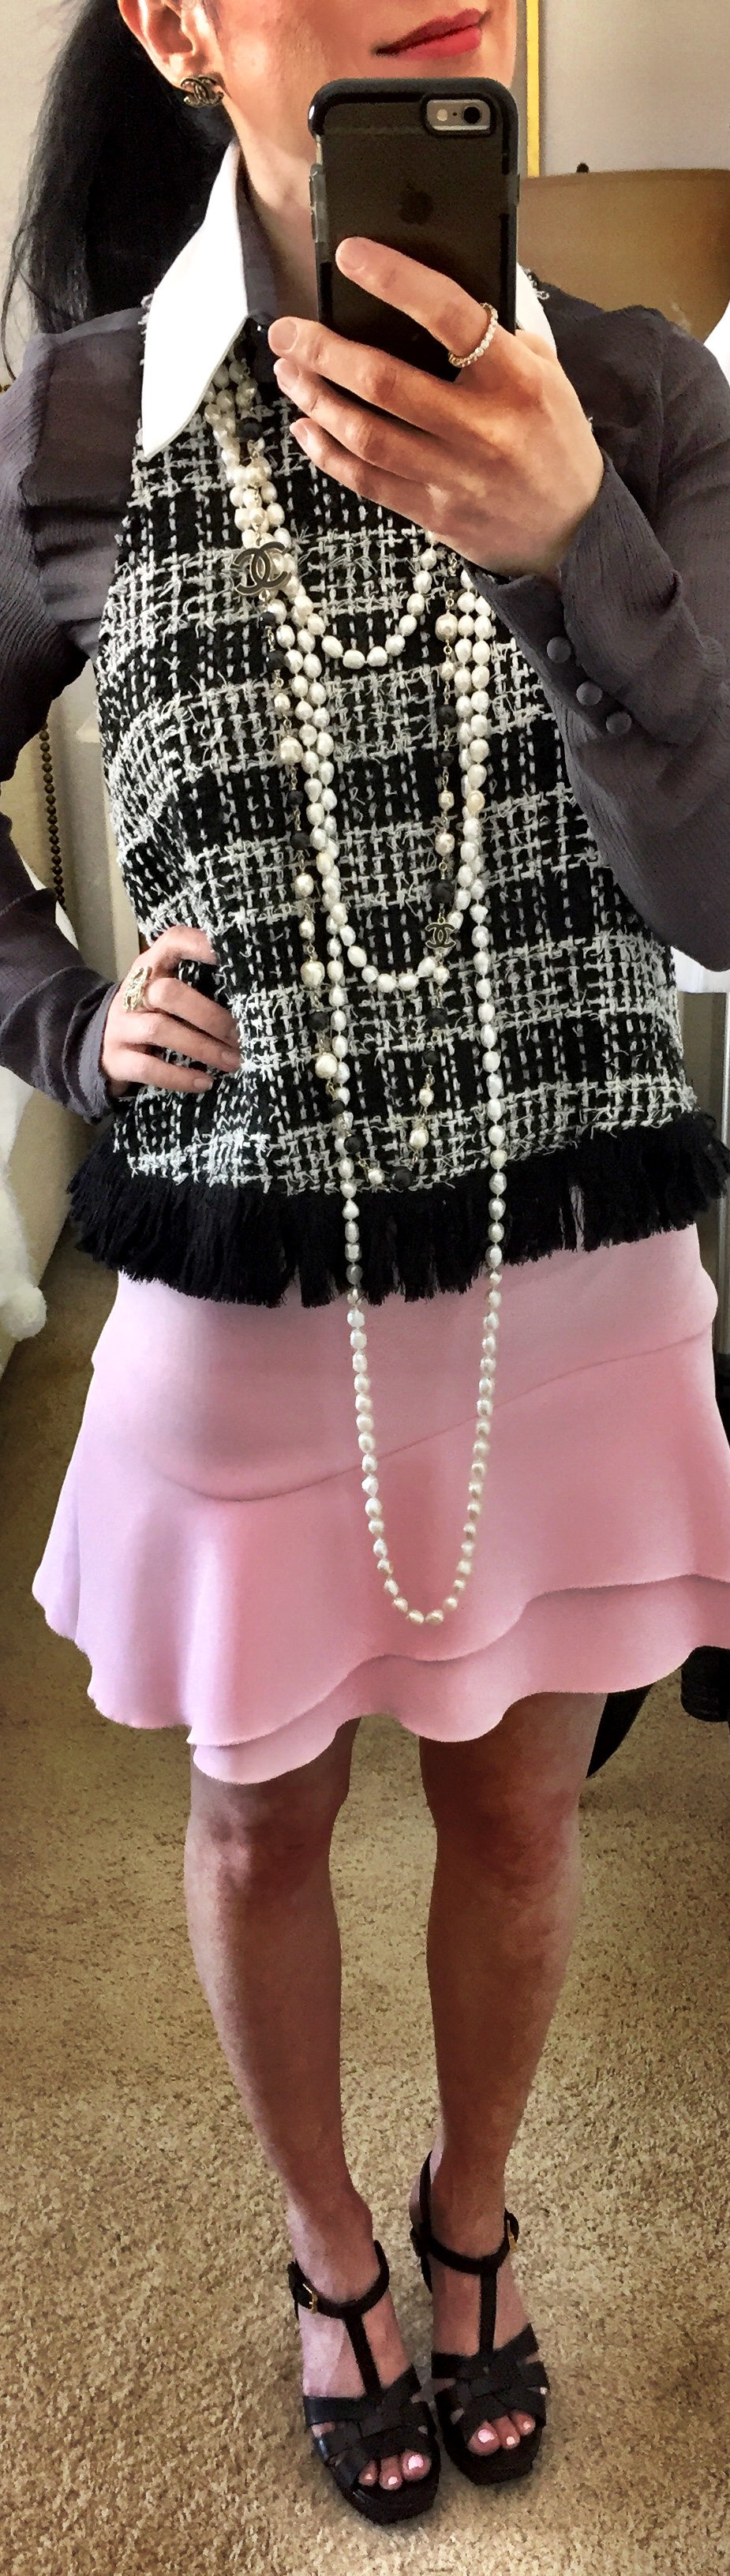 April 21st, inspired by CHANEL this skirt and top are by Zara and blouse by Karl Lagerfeld